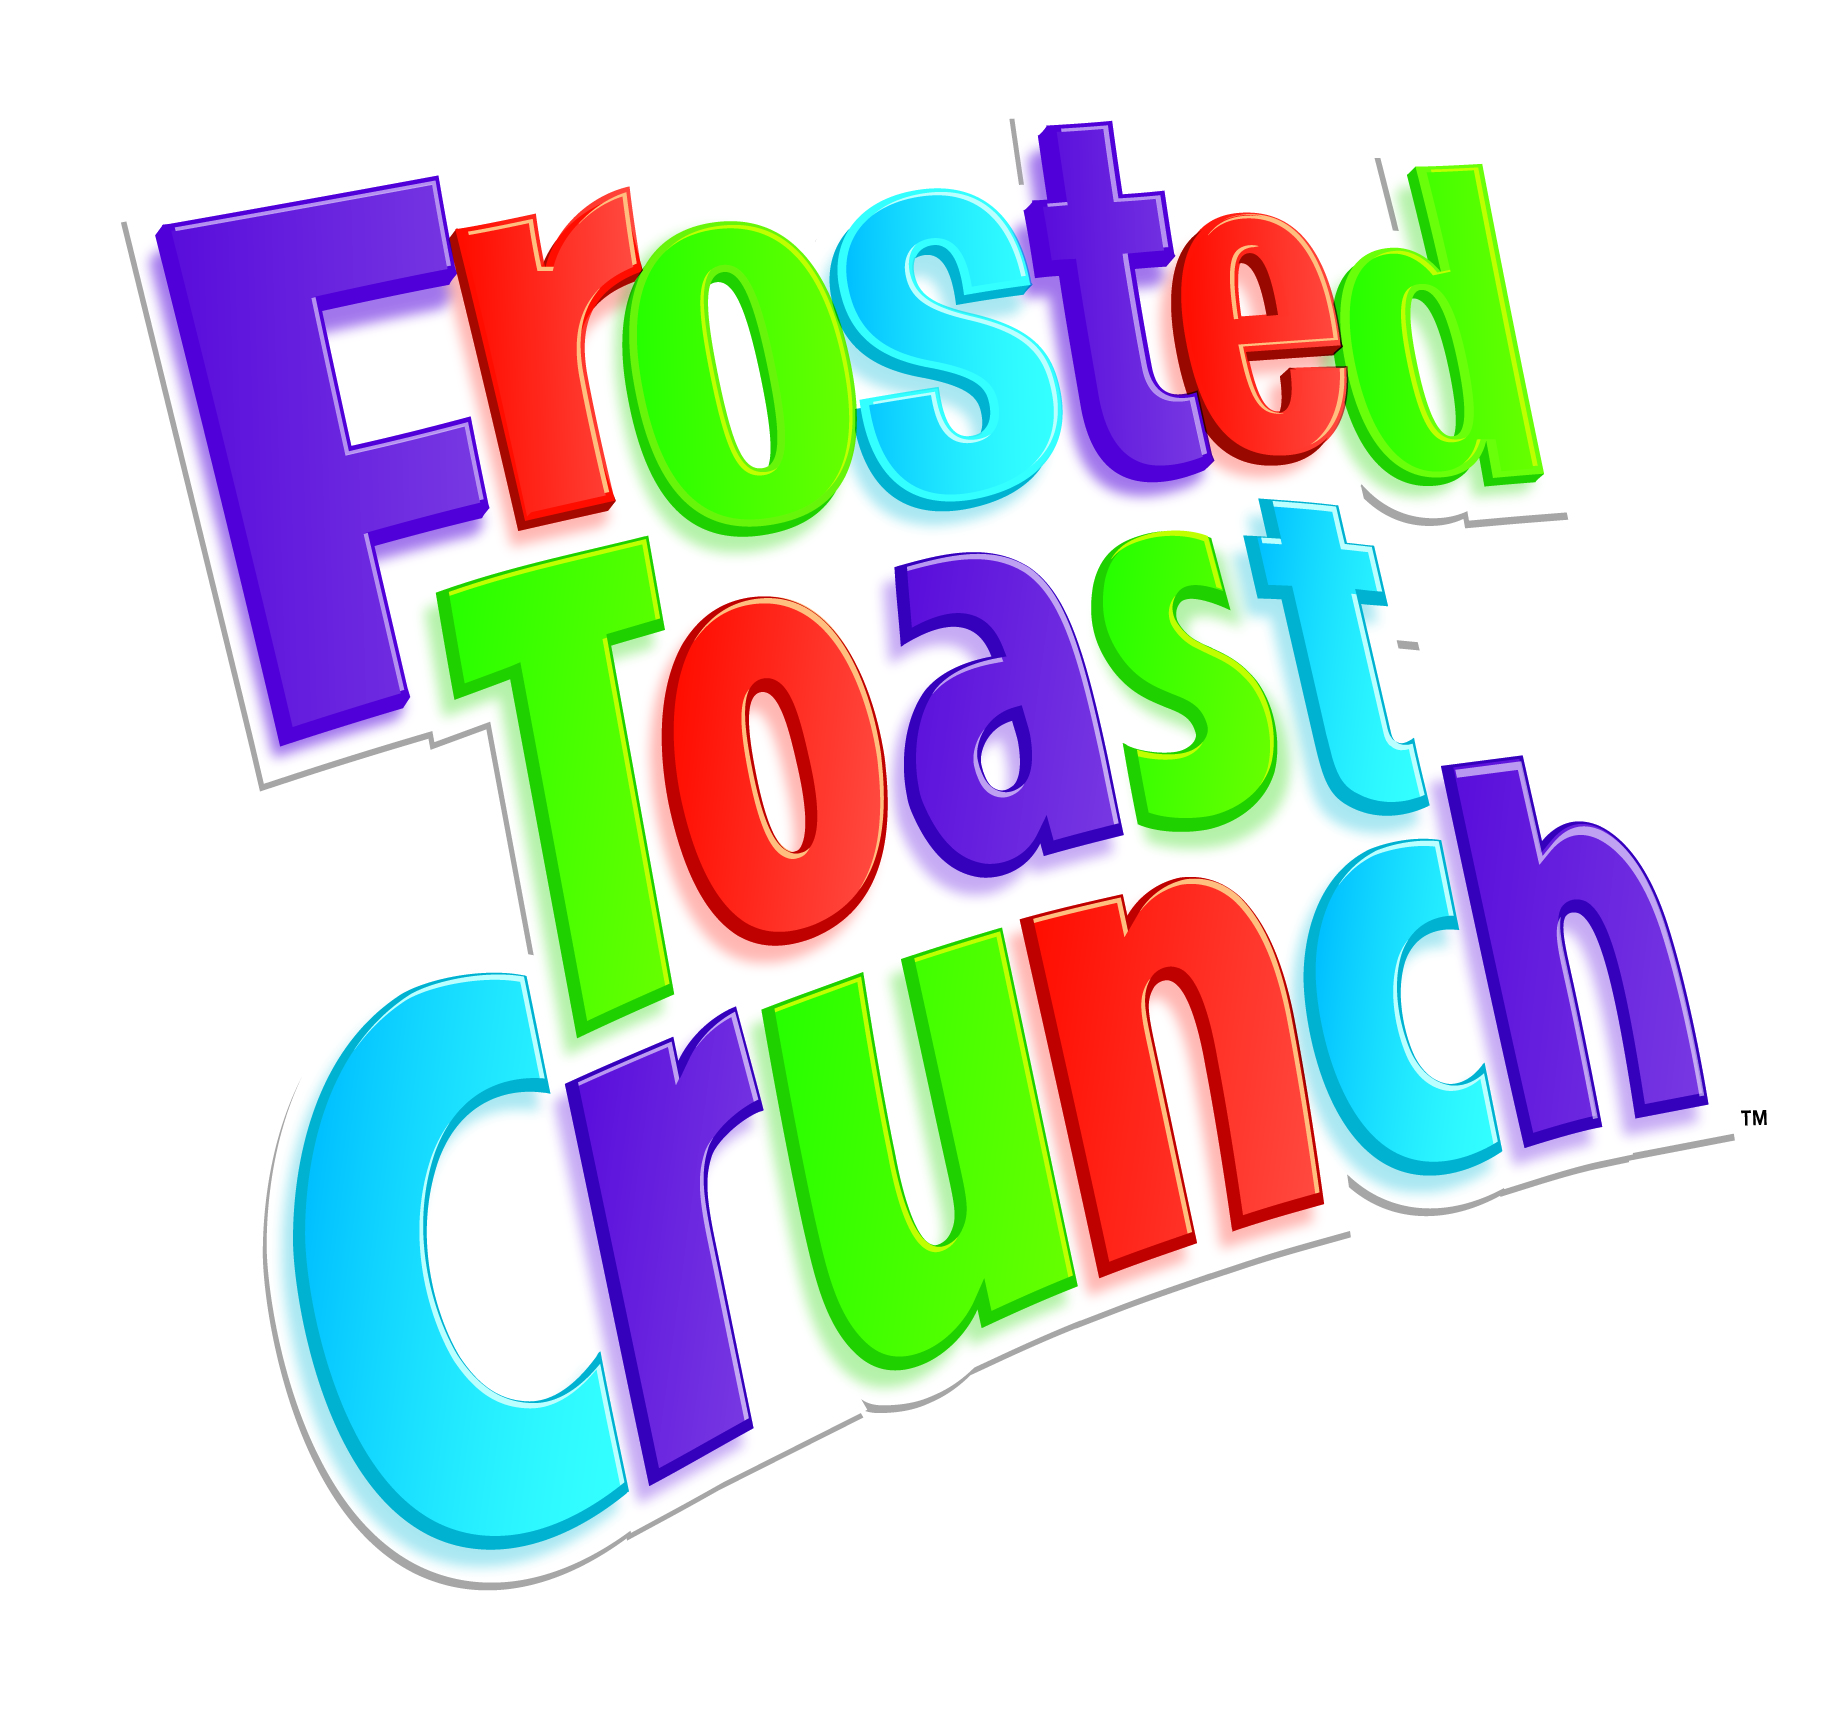 Frosted Toast Crunch.